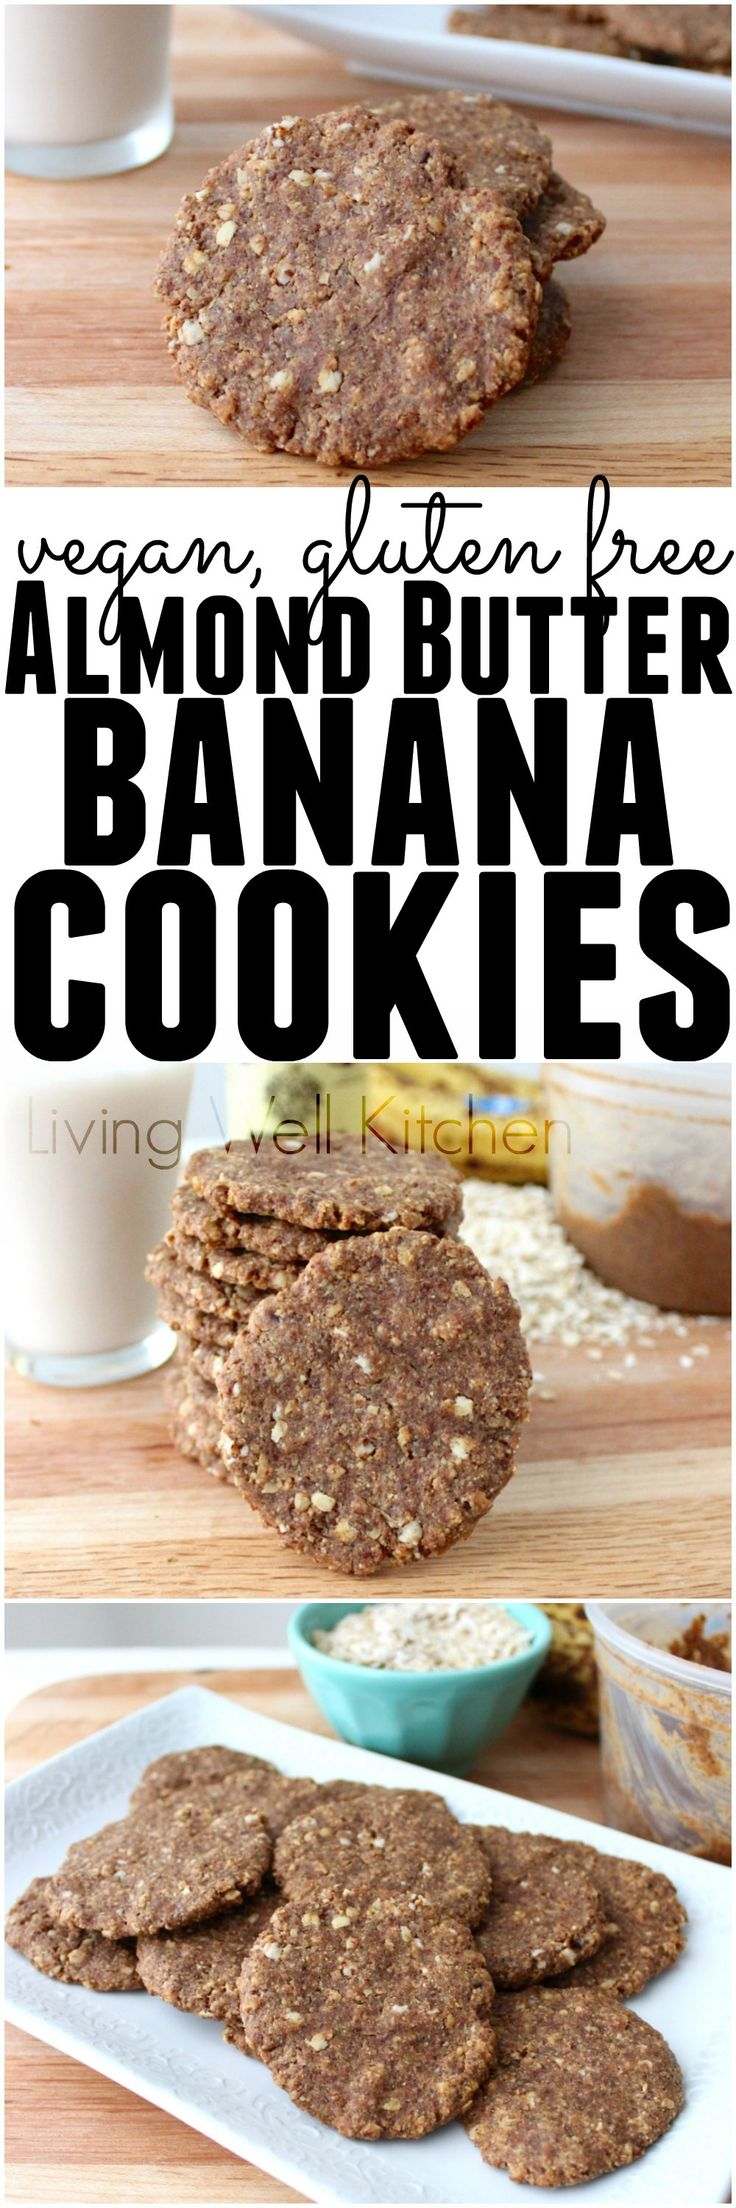 Gluten free, vegan Almond Butter Banana Cookie recipe from @memeinge. Five ingredient cookies with no added sugar, butter, or oil. They satisfy your sweet tooth without giving you a sugar crash. These aren't just for dessert; you can eat them for breakfast, too! via @memeinge